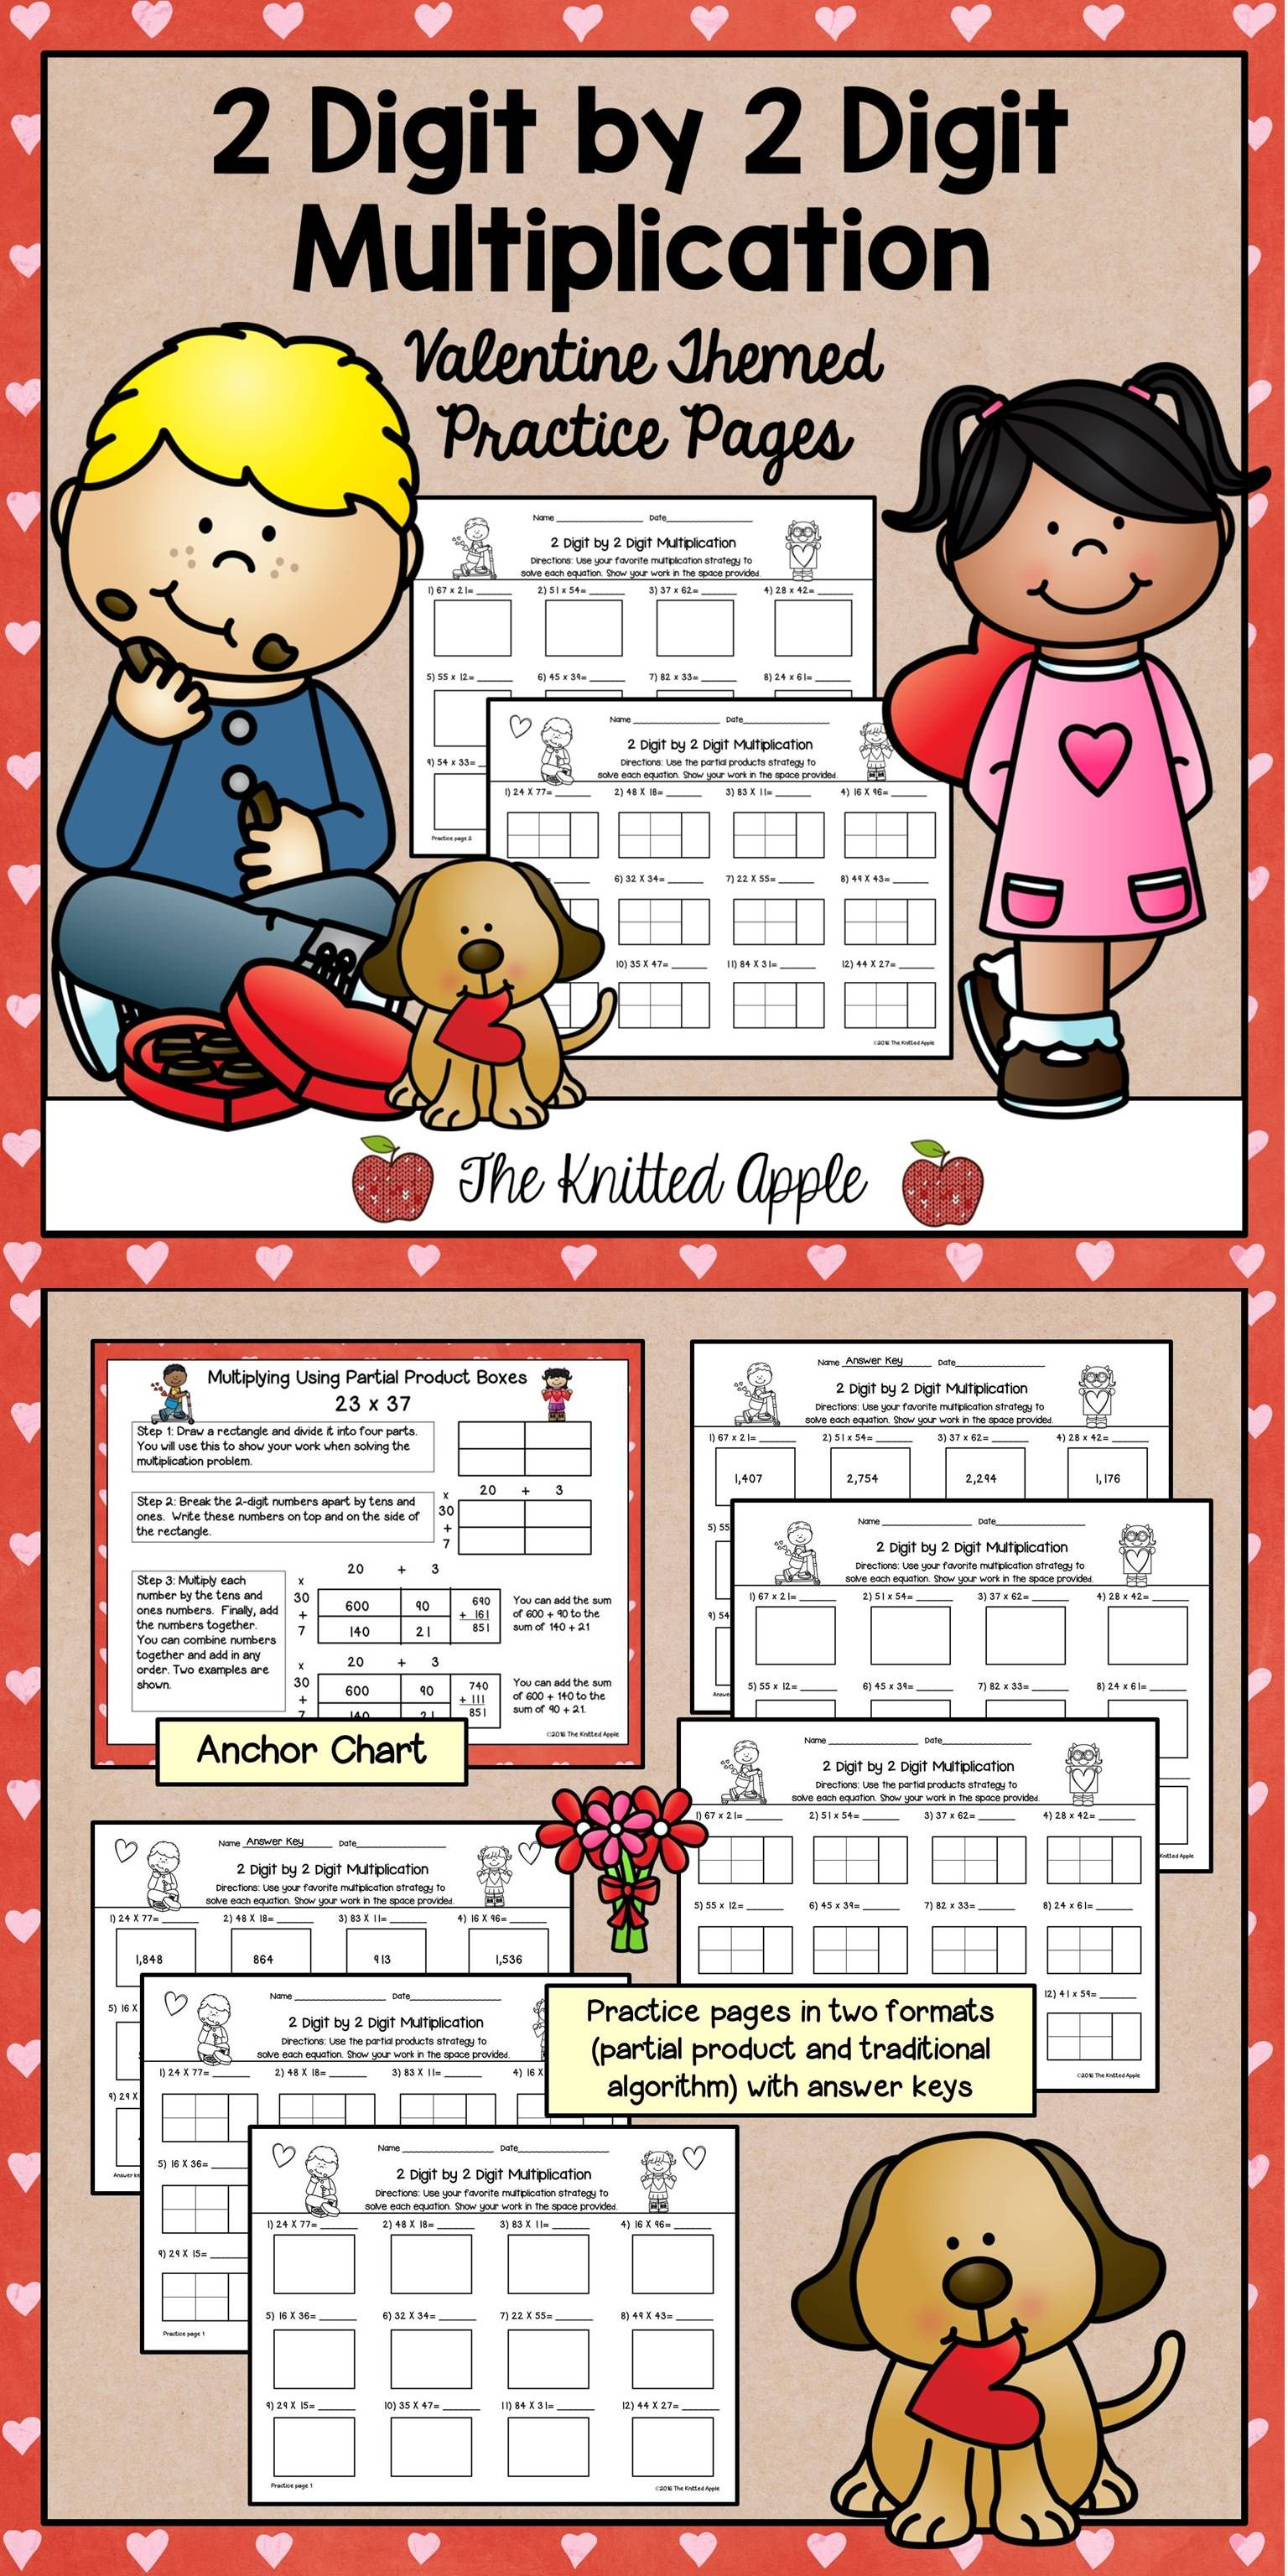 2 Digit By 2 Digit Multiplication Valentine Theme